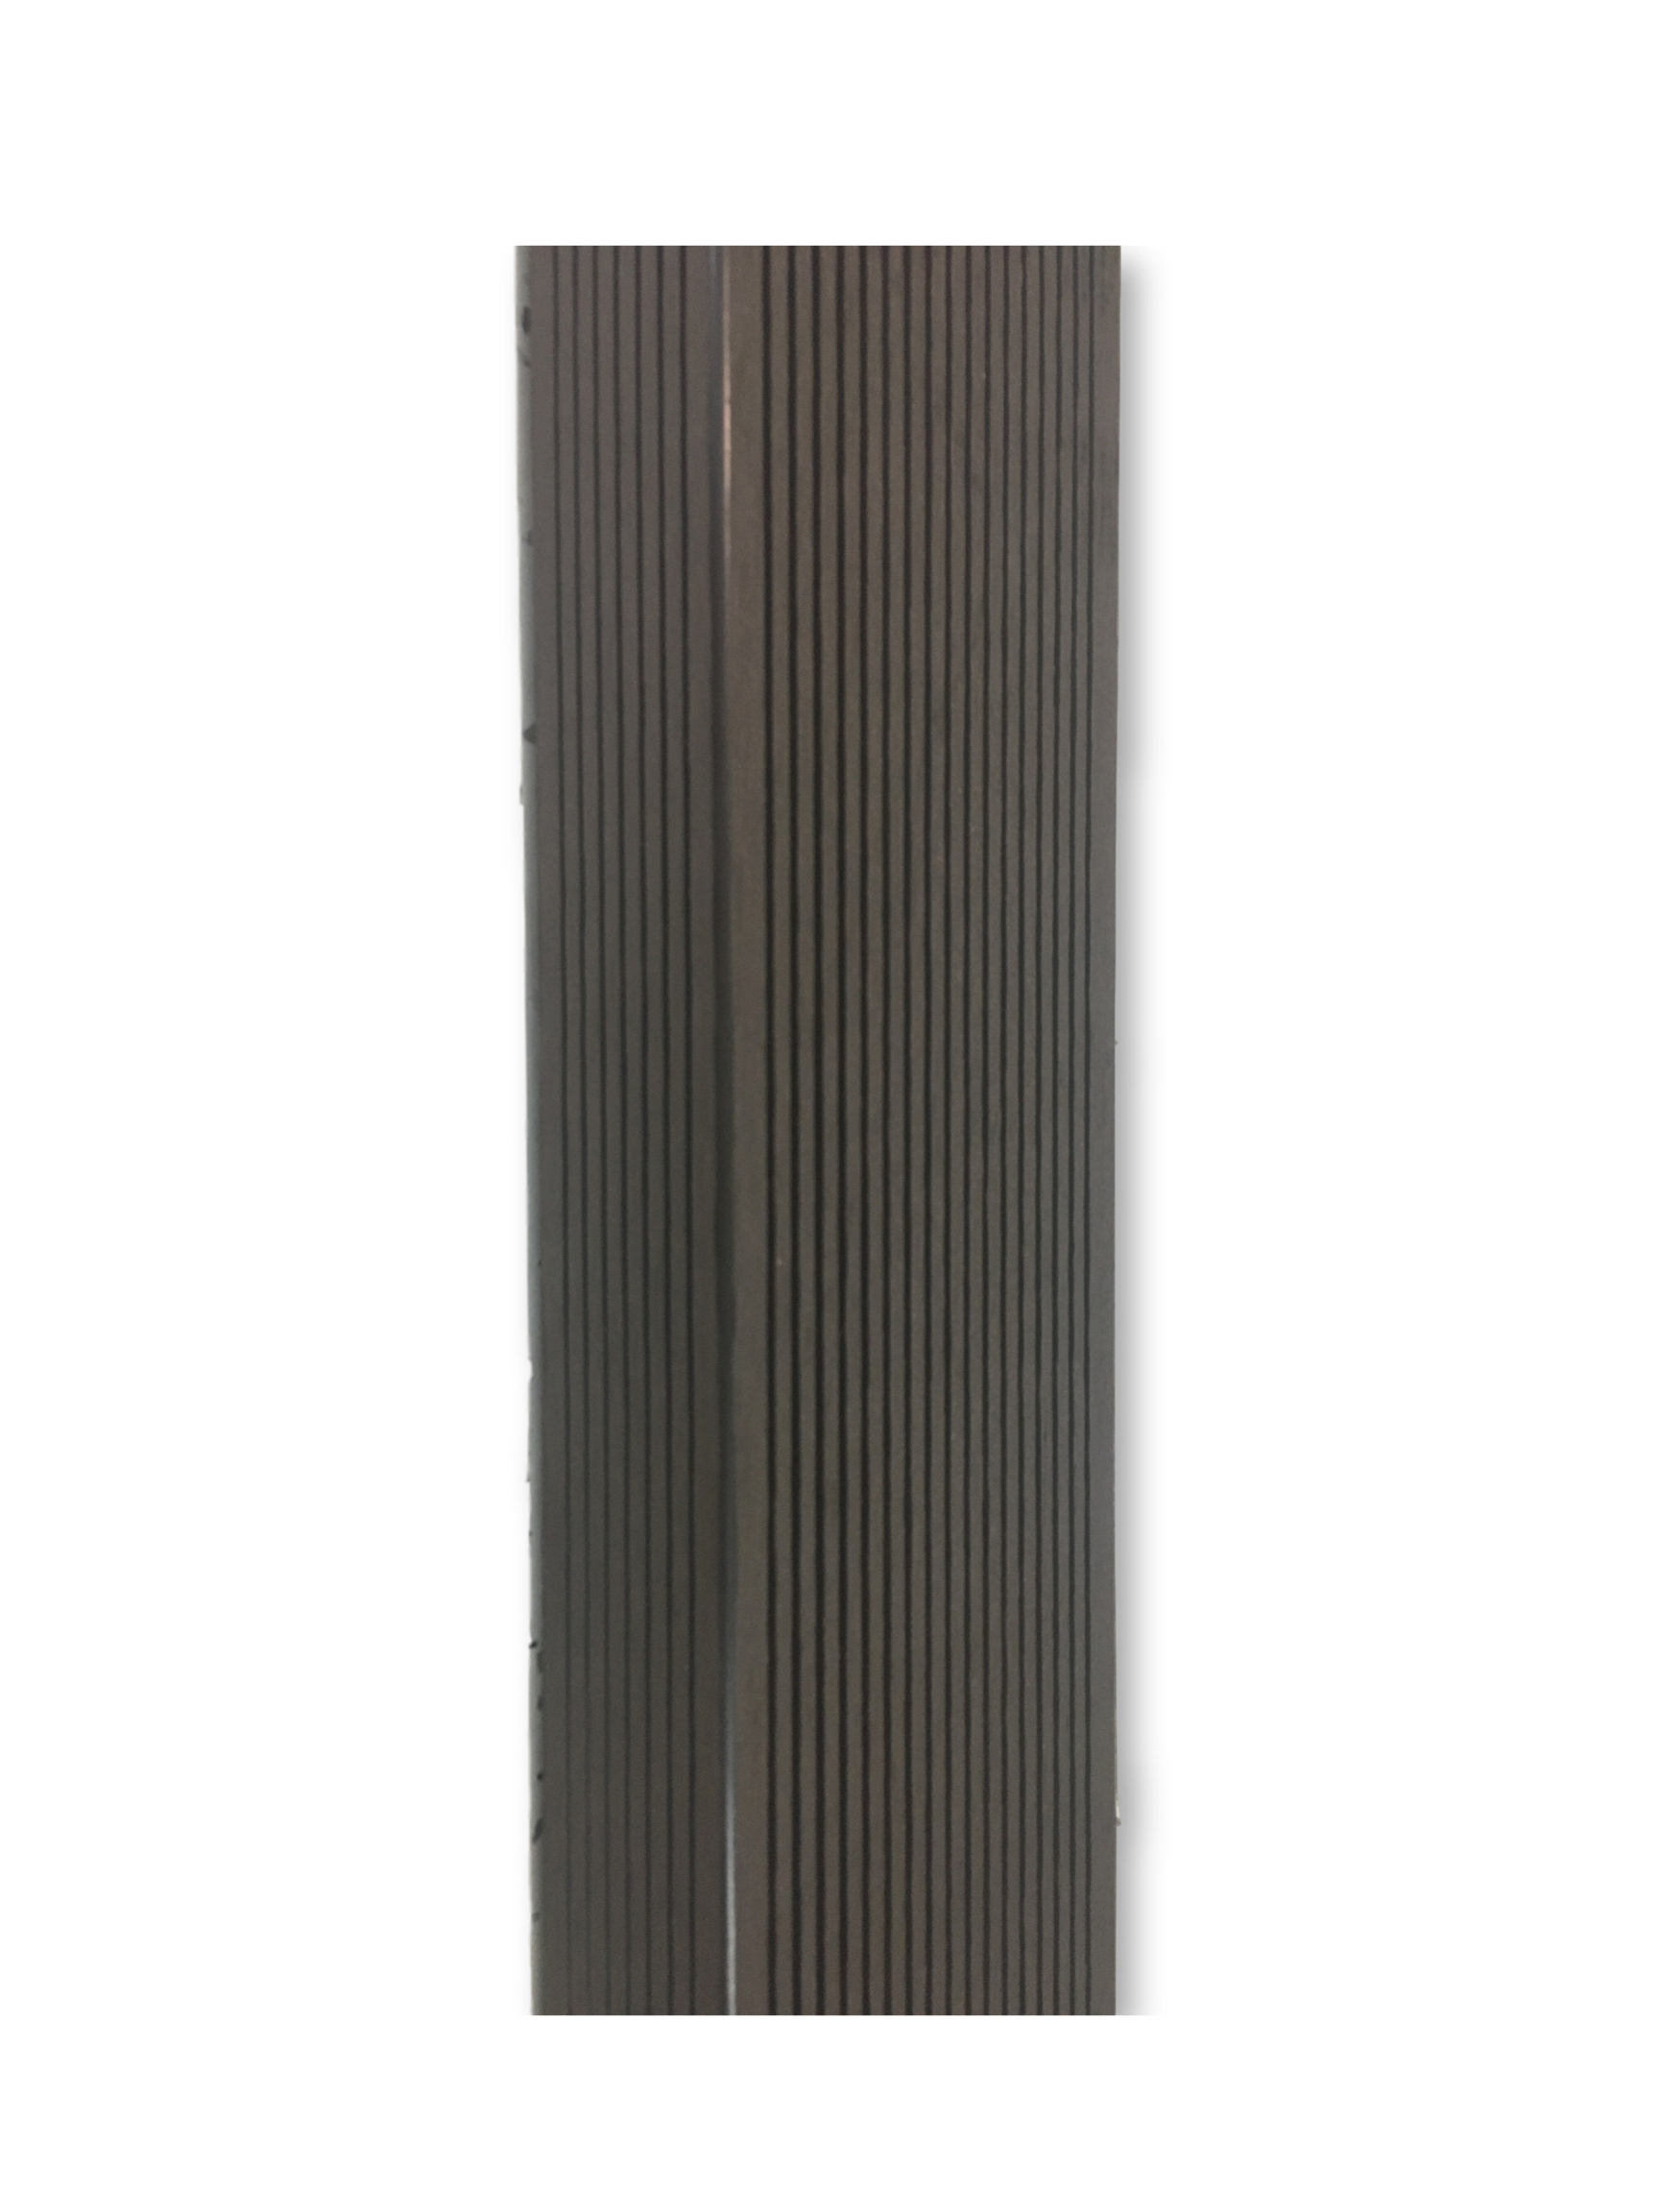 Composite Decking for Steps 100mm X 45mm x 2.7m